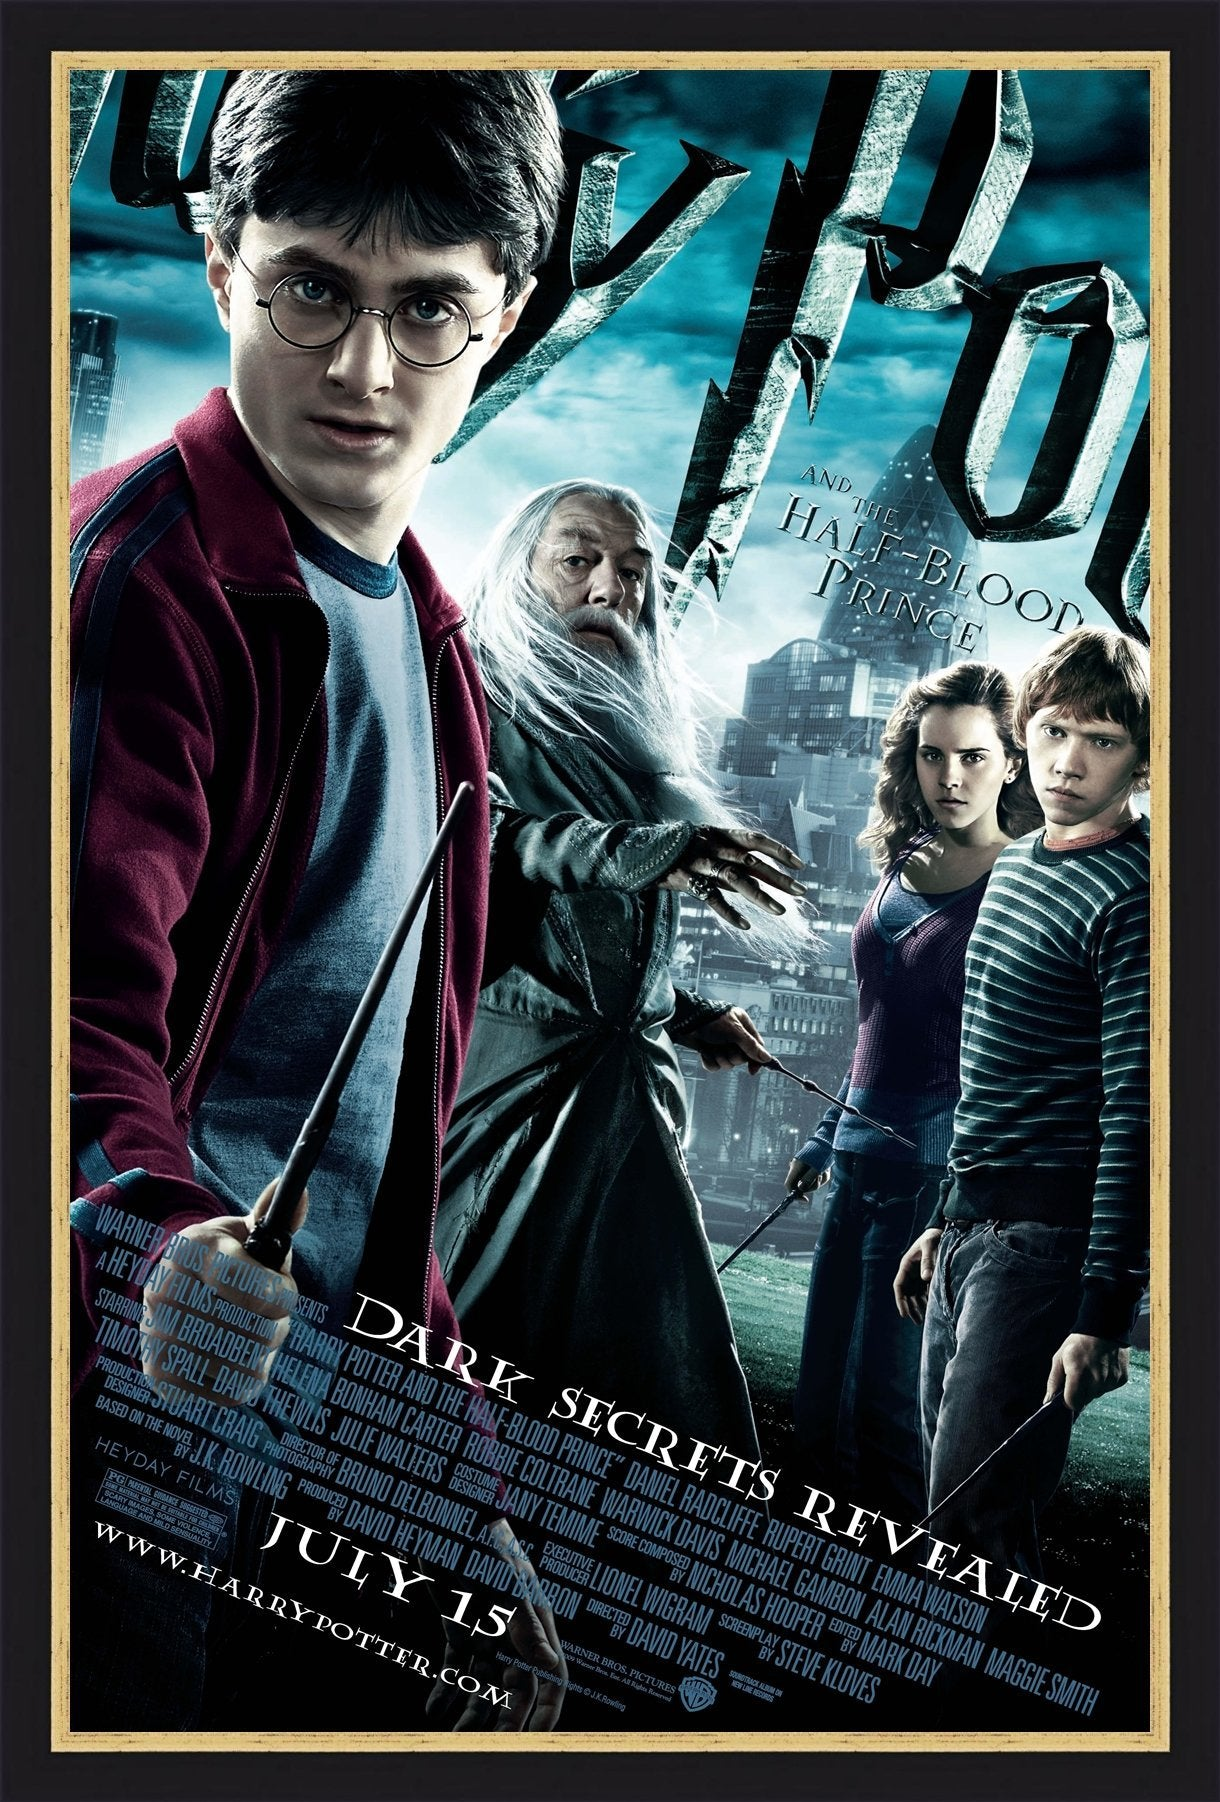 An original movie poster for the film Harry Potter and the Half Blood Prince